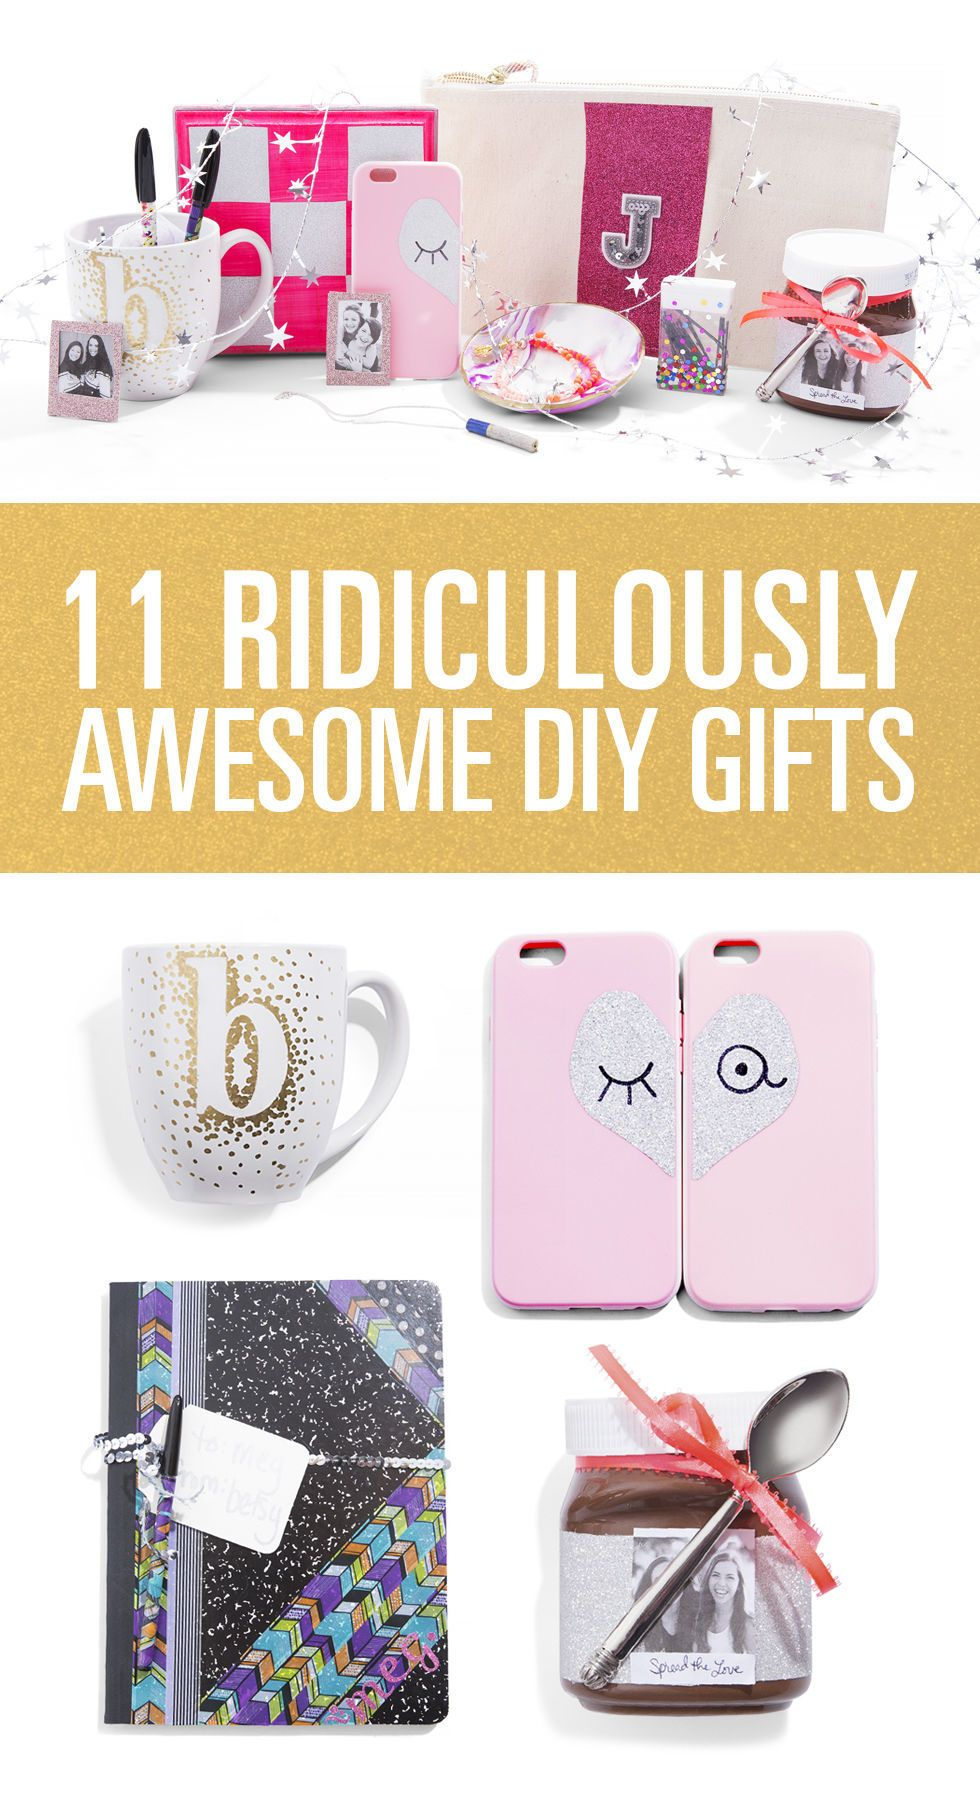 11 Ridiculously Awesome DIY Gifts for Your BFFs  sc 1 st  Seventeen Magazine & 11 Best DIY Christmas Gifts For Friends - Homemade Gift Ideas for BFFs